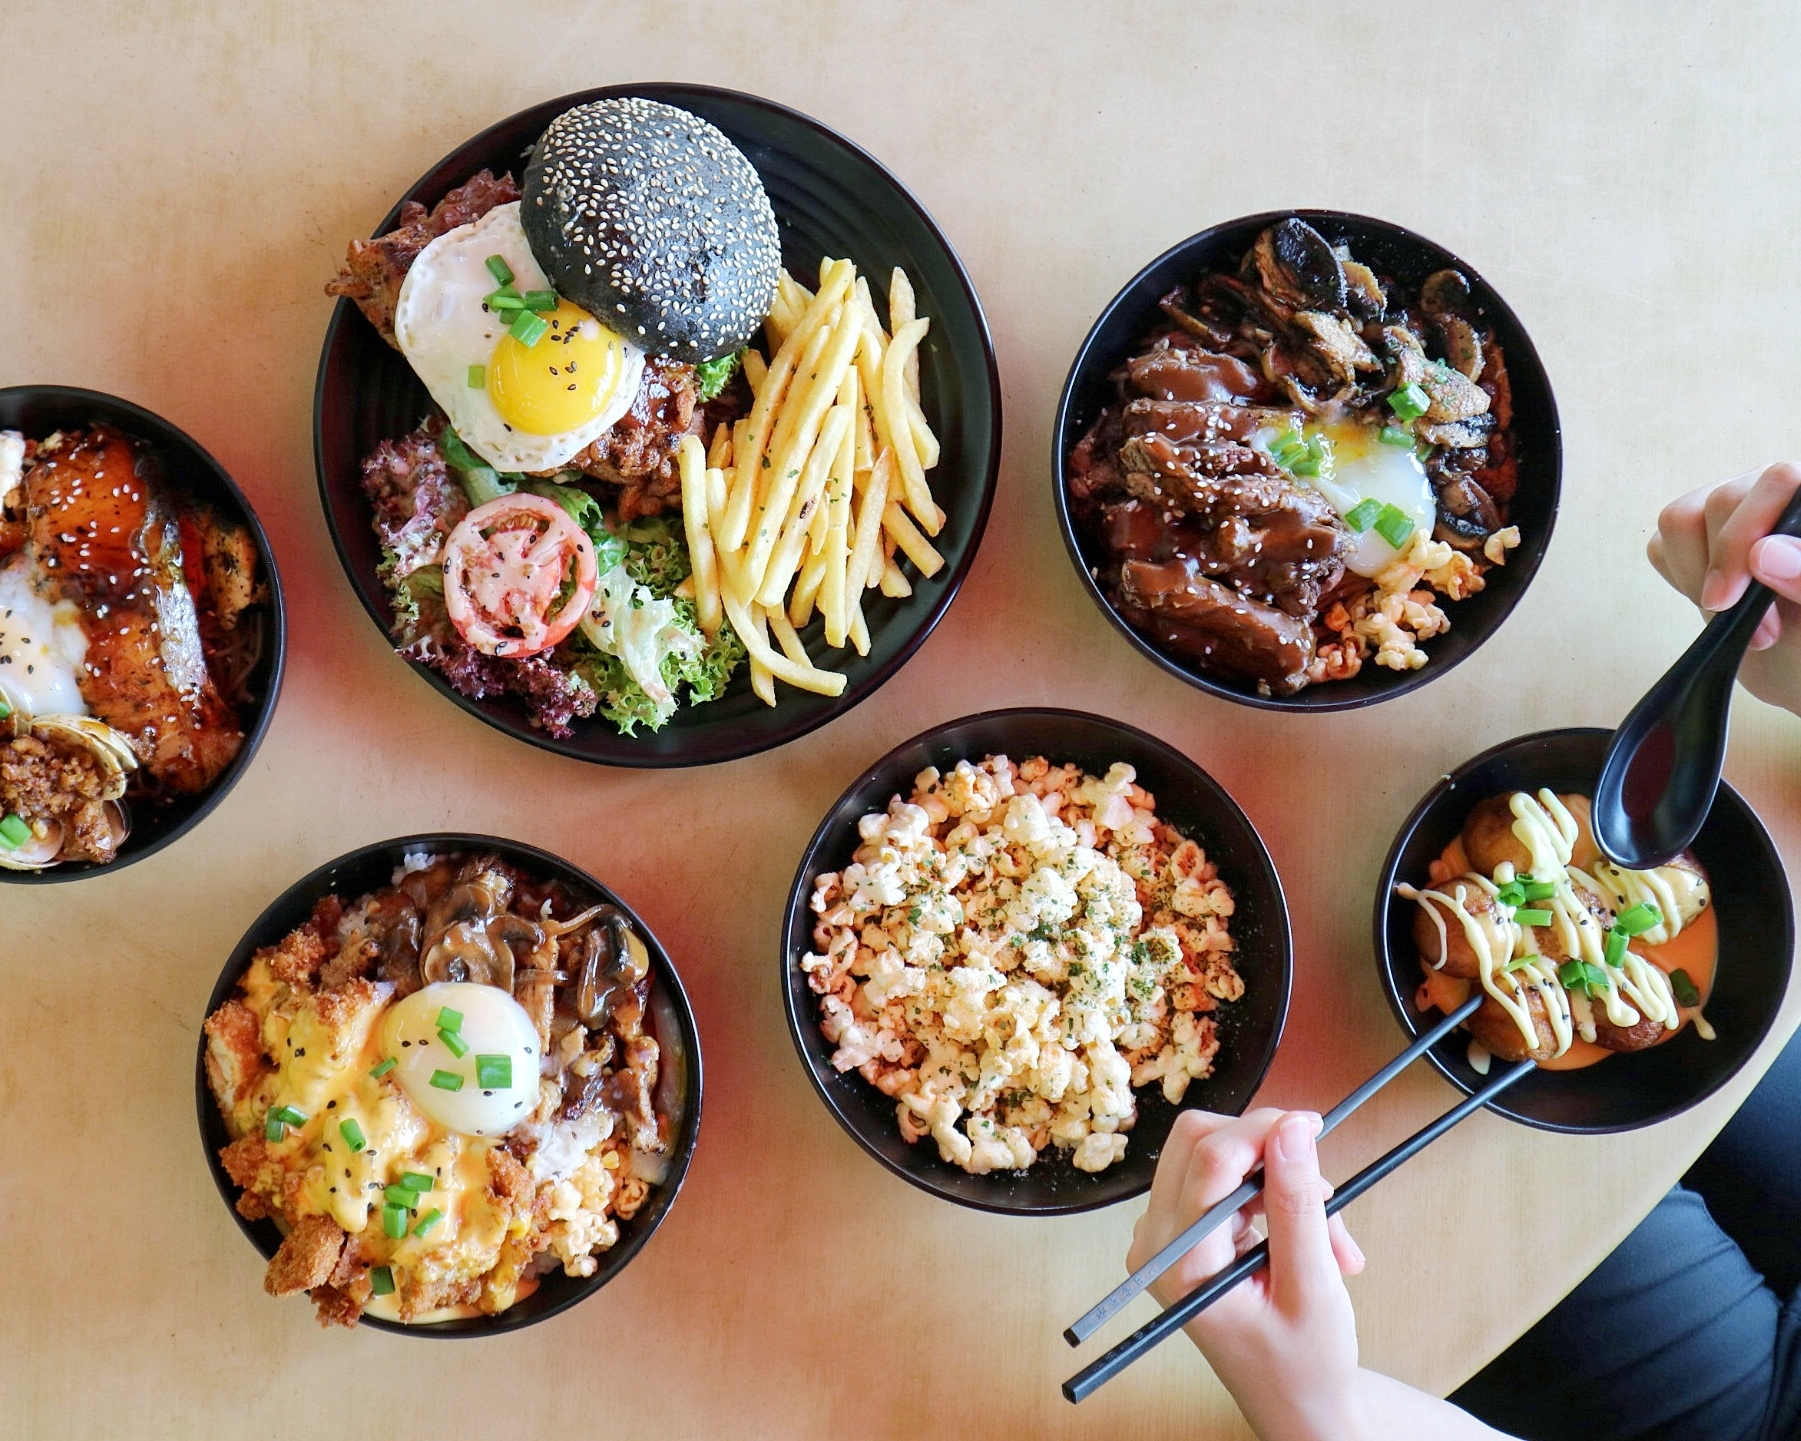 (New) Indulge SG: This stall in Upper Thomson Kopitiam serves HUGE, Restaurant-Quality & Affordable Rice and Soba Bowls!